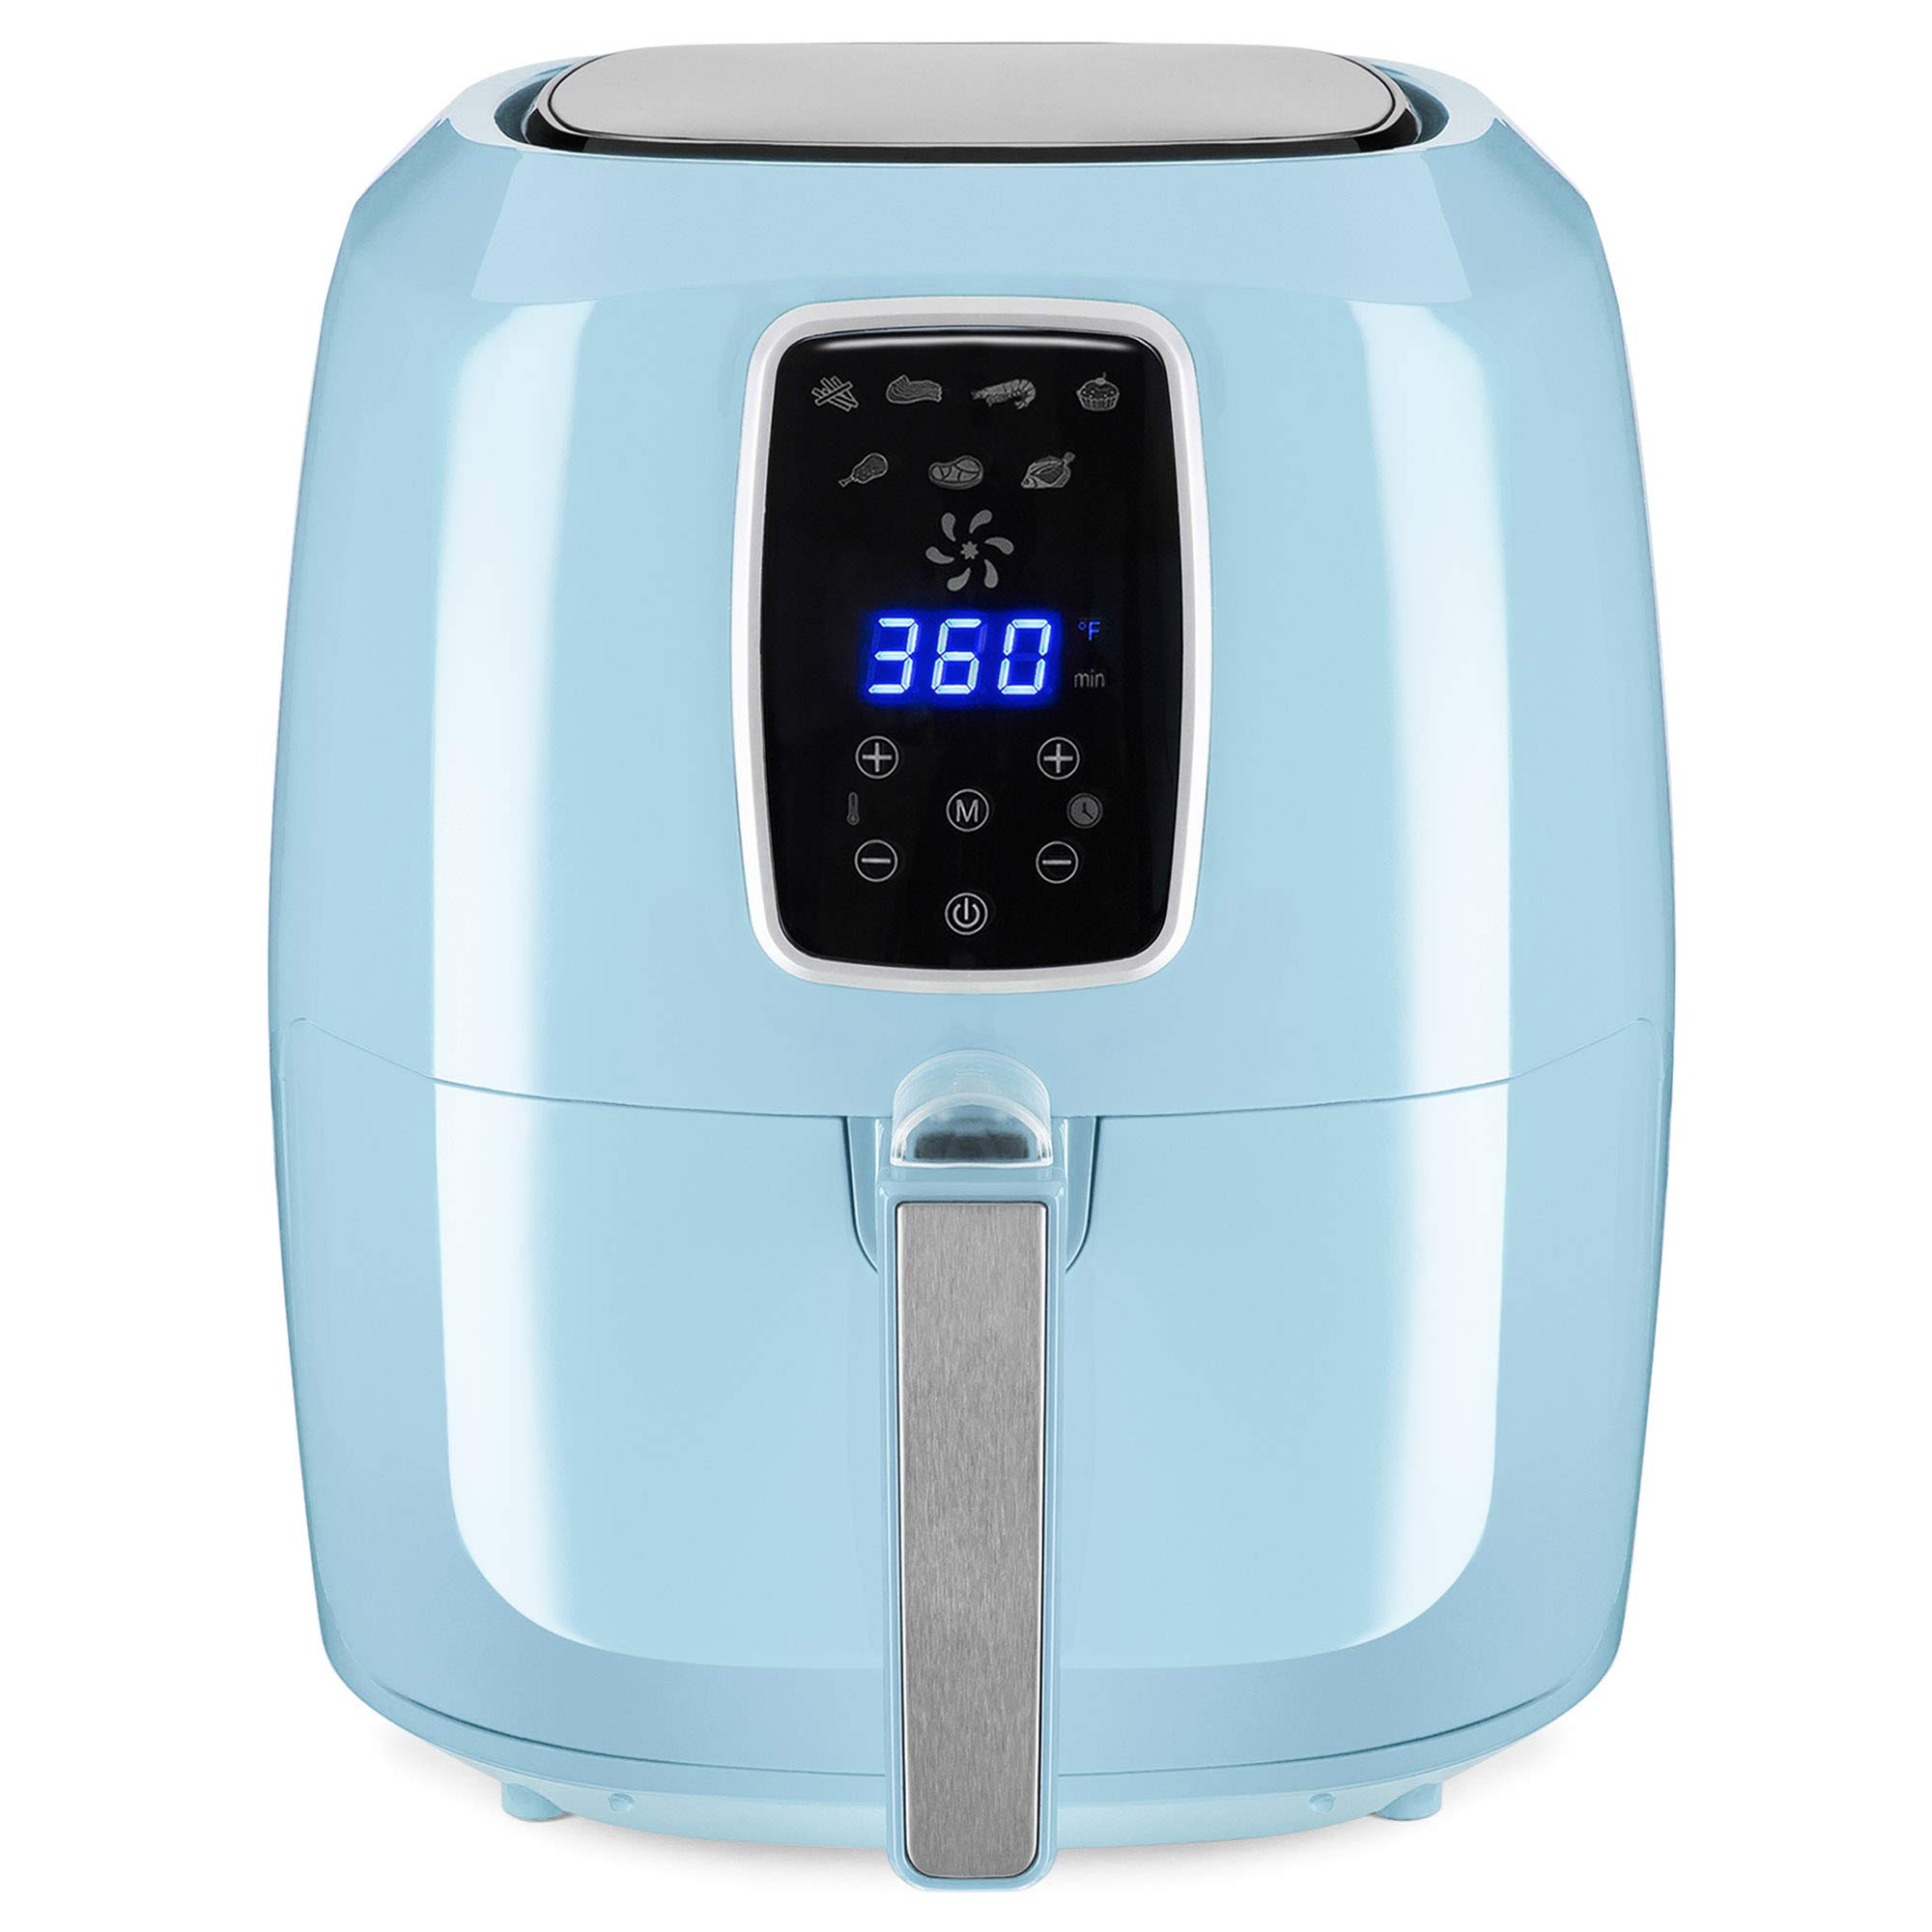 Best Choice Products 5.5qt 7-in-1 Digital Family Sized Air Fryer Kitchen Appliance w/LCD Screen and Non-Stick Fryer Basket, Baby Blue